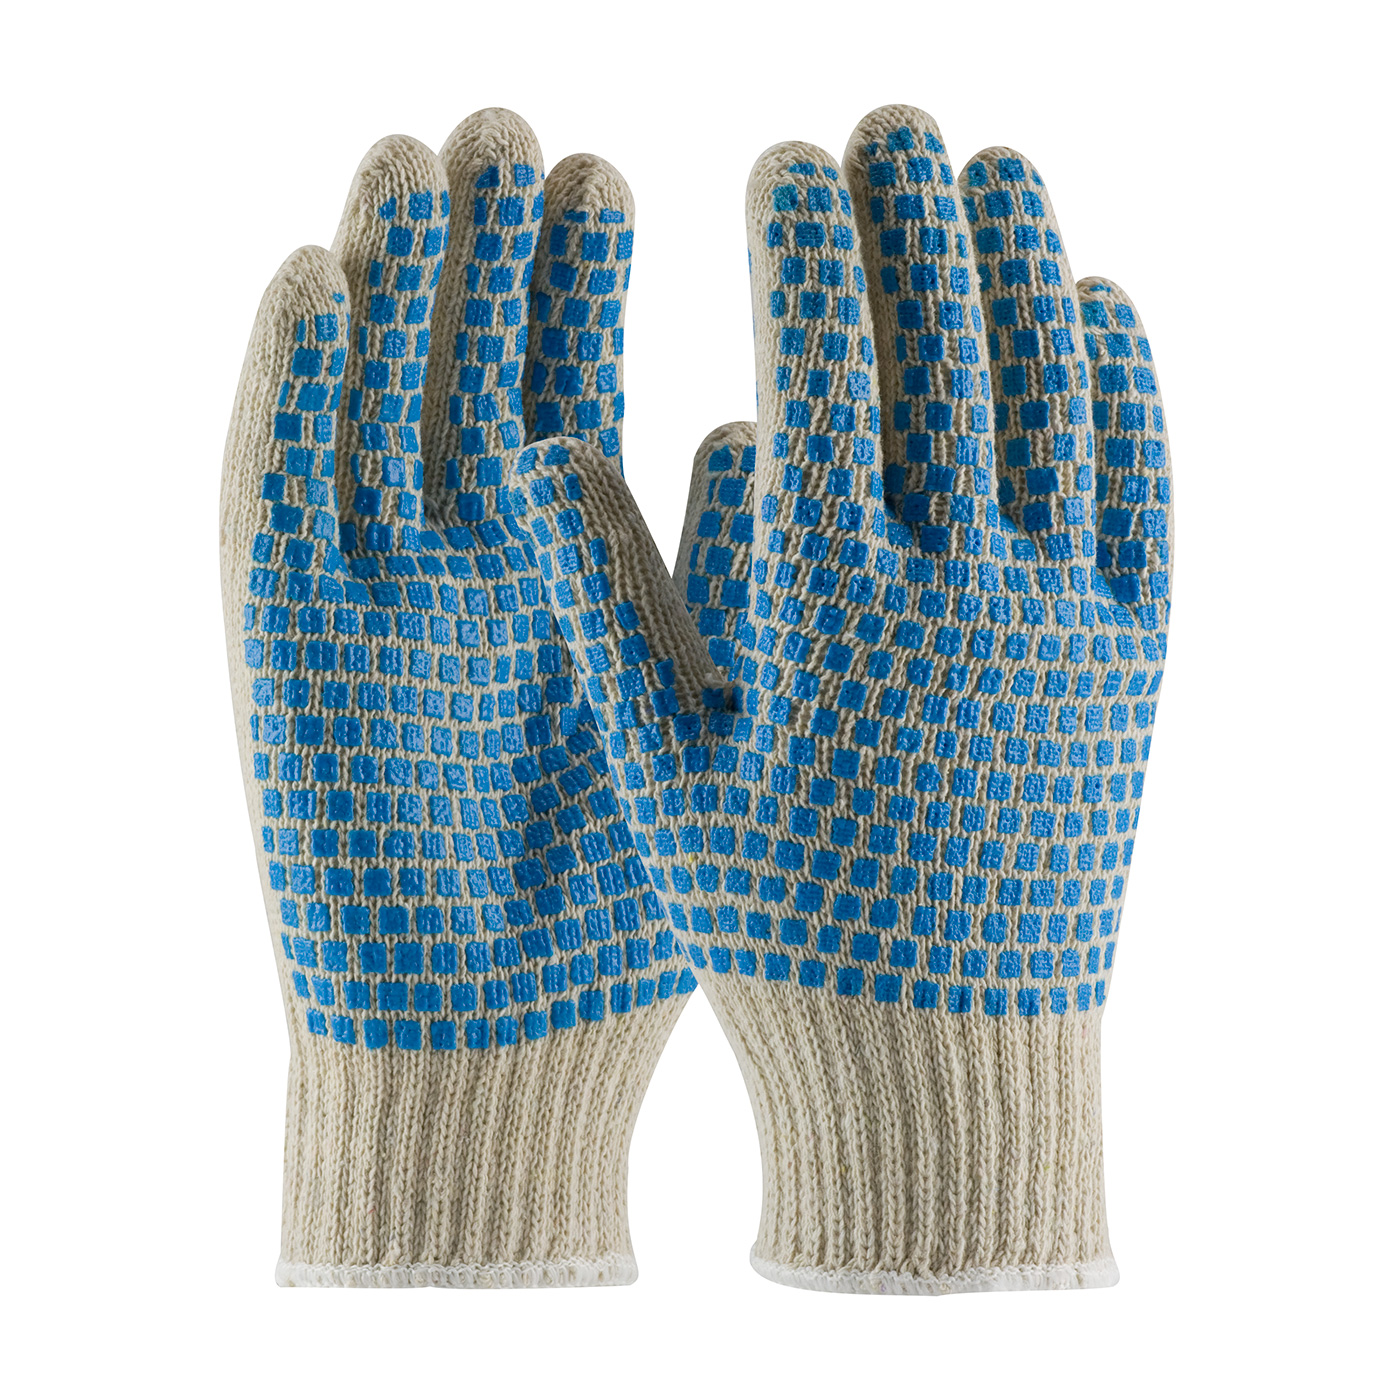 B710SBS PIP® Seamless Knit Cotton / Polyester Glove with Double-Sided PVC Brick Pattern Grip